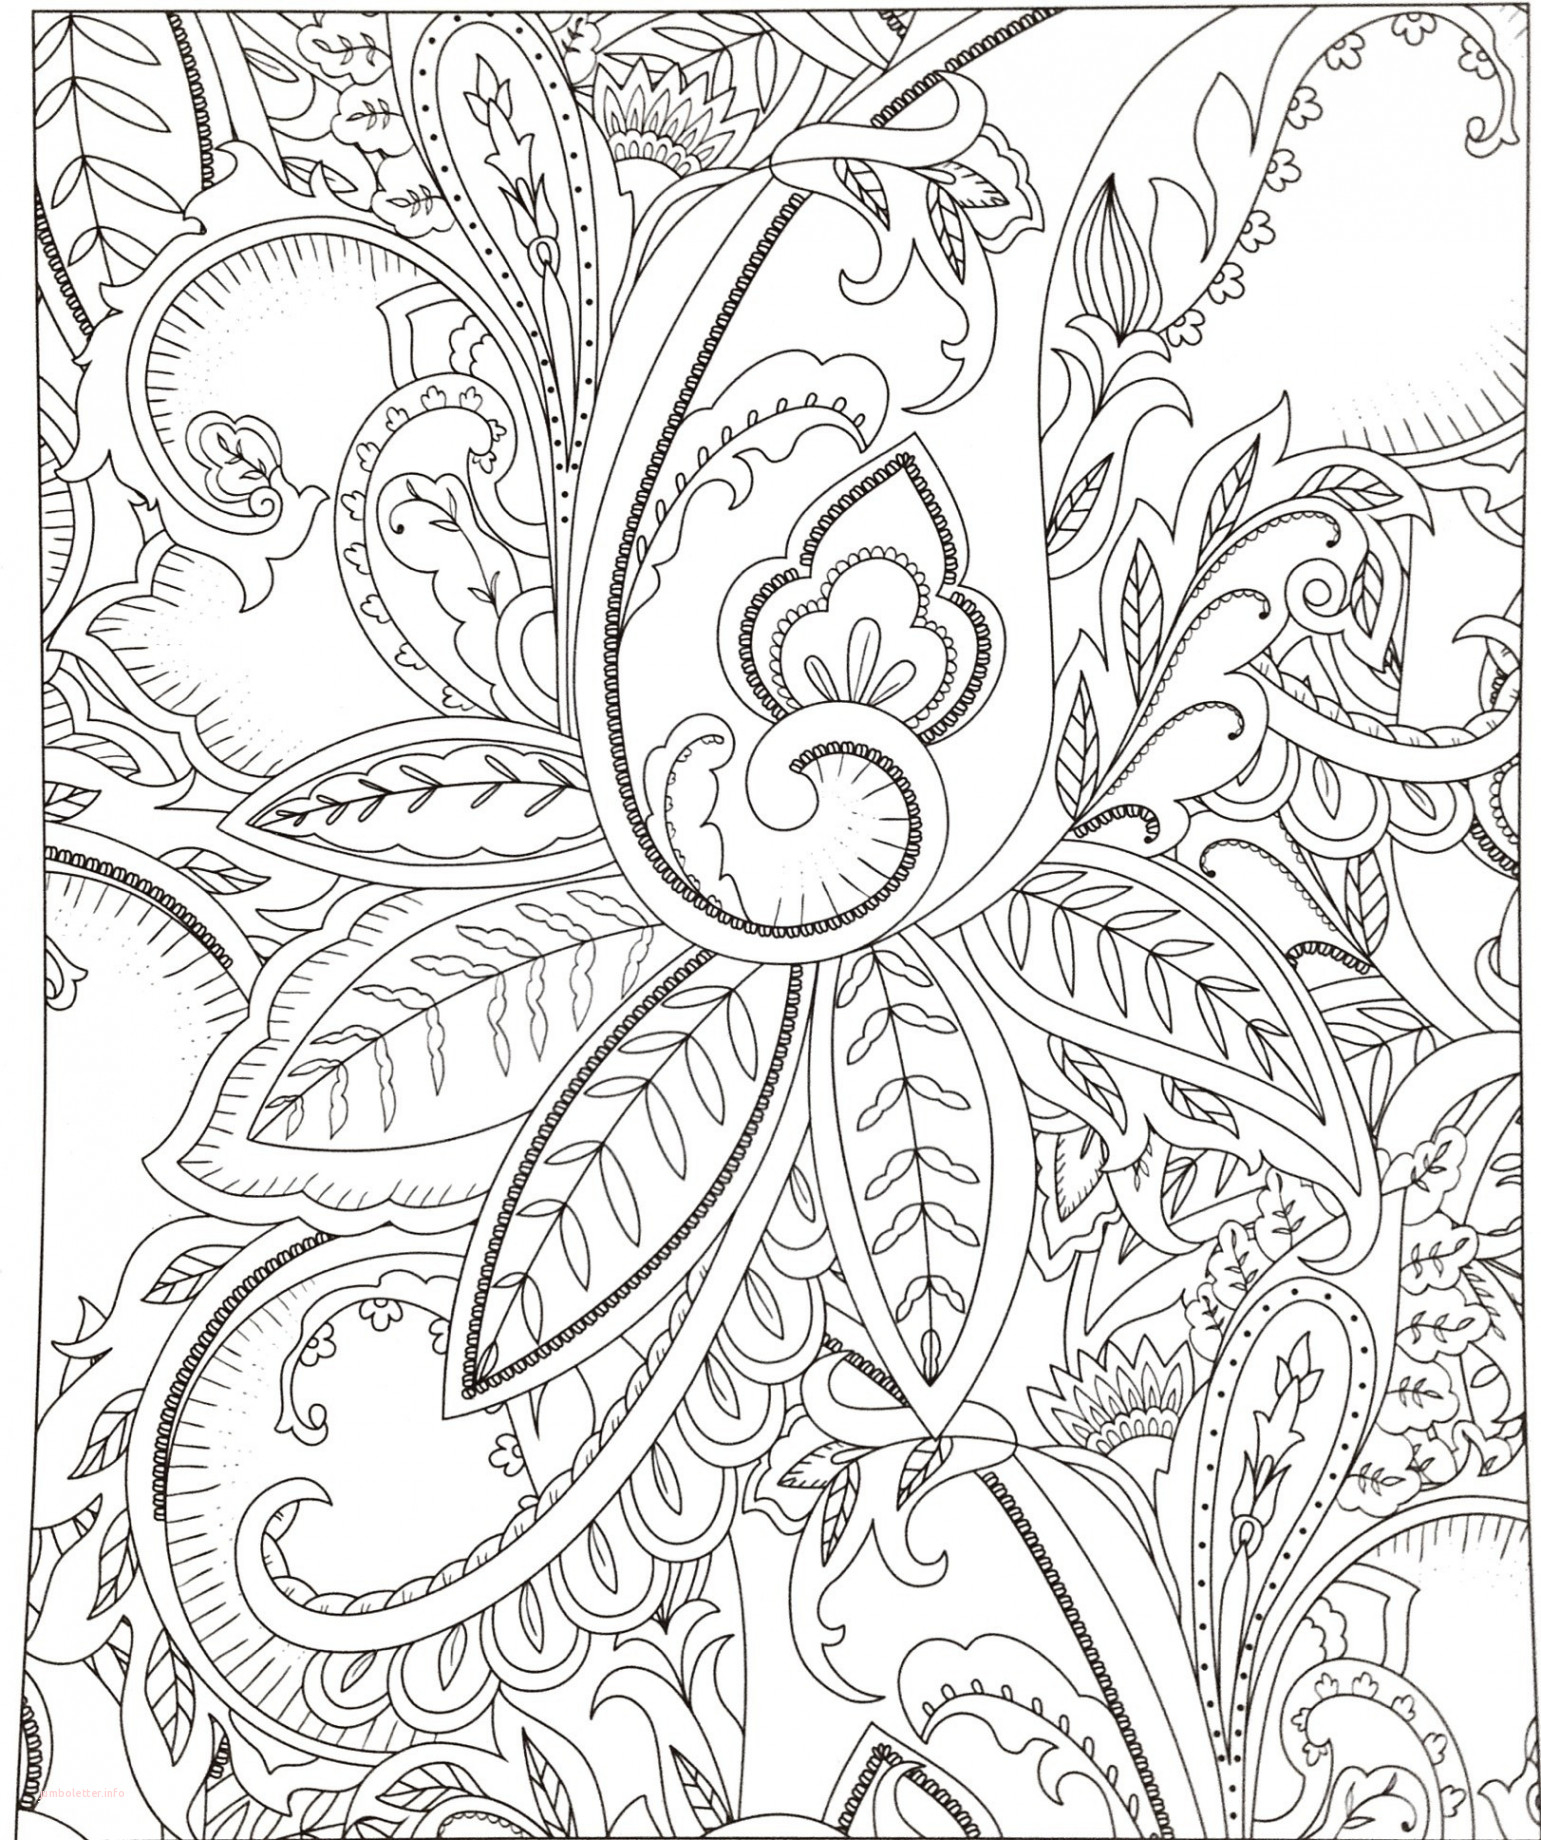 Cowgirl Boots Coloring Pages  Download 18c - Save it to your computer